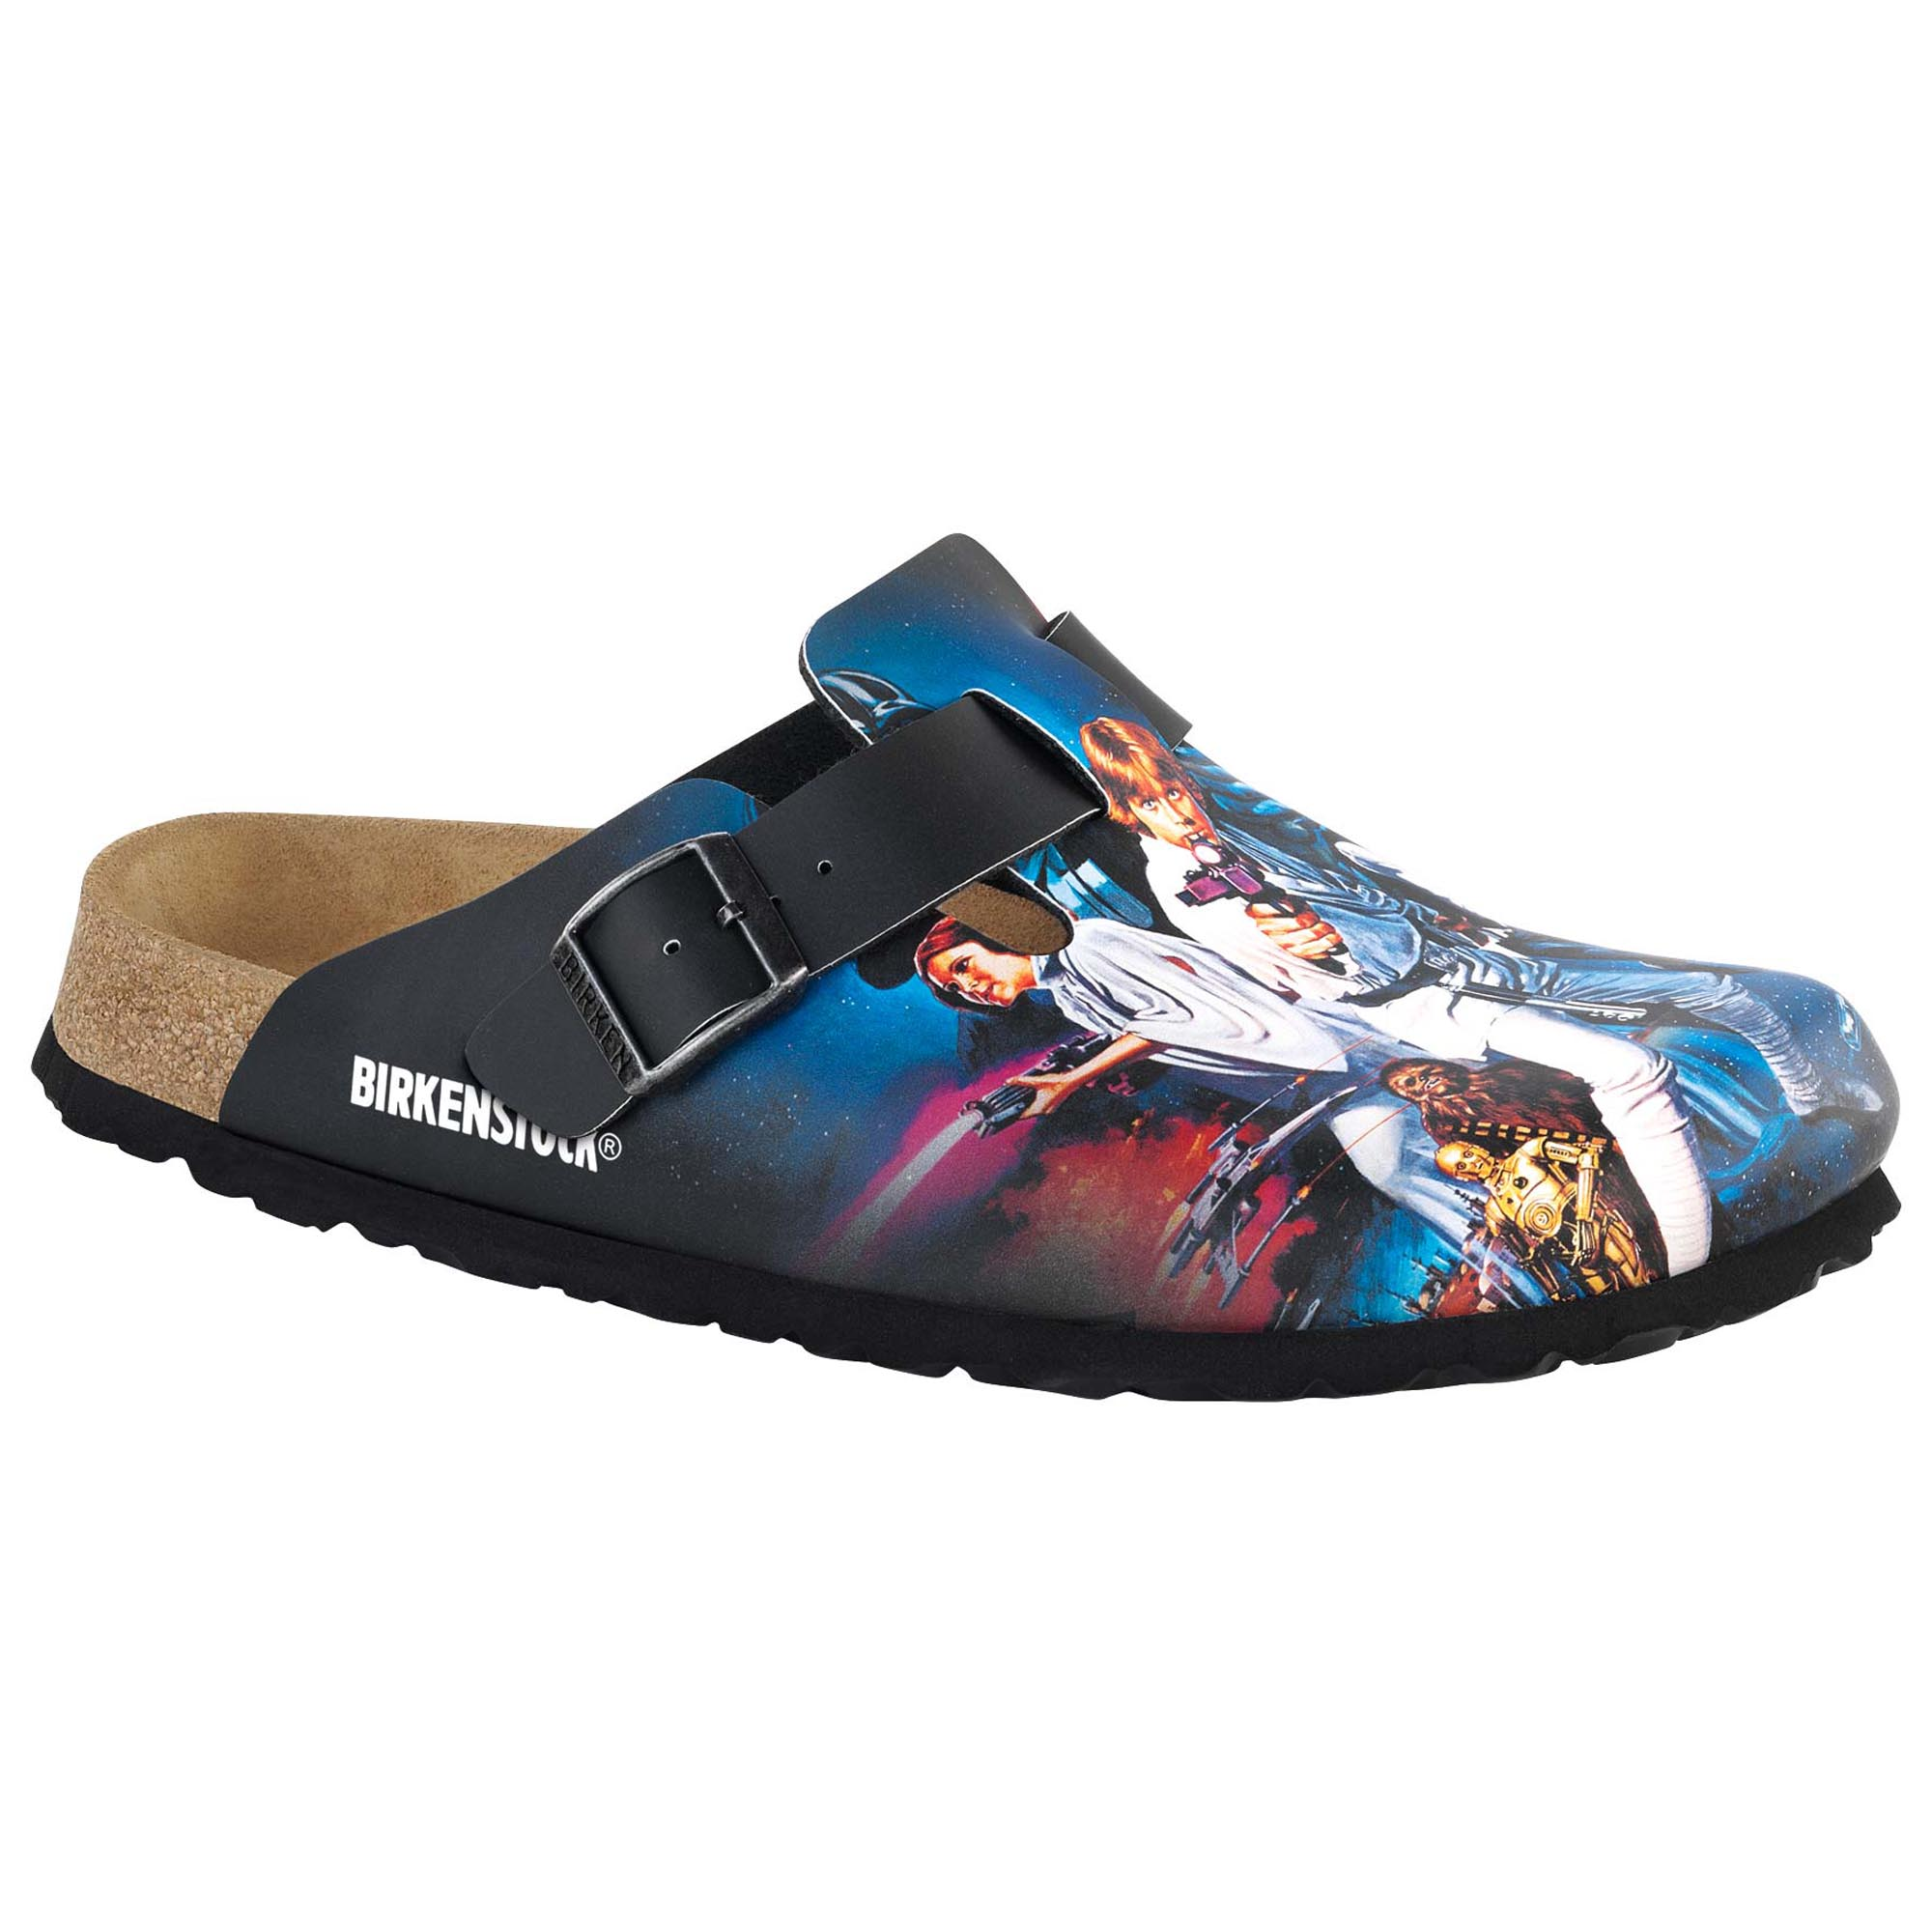 351c84544567be Boston Birko-Flor Star Wars Heroes